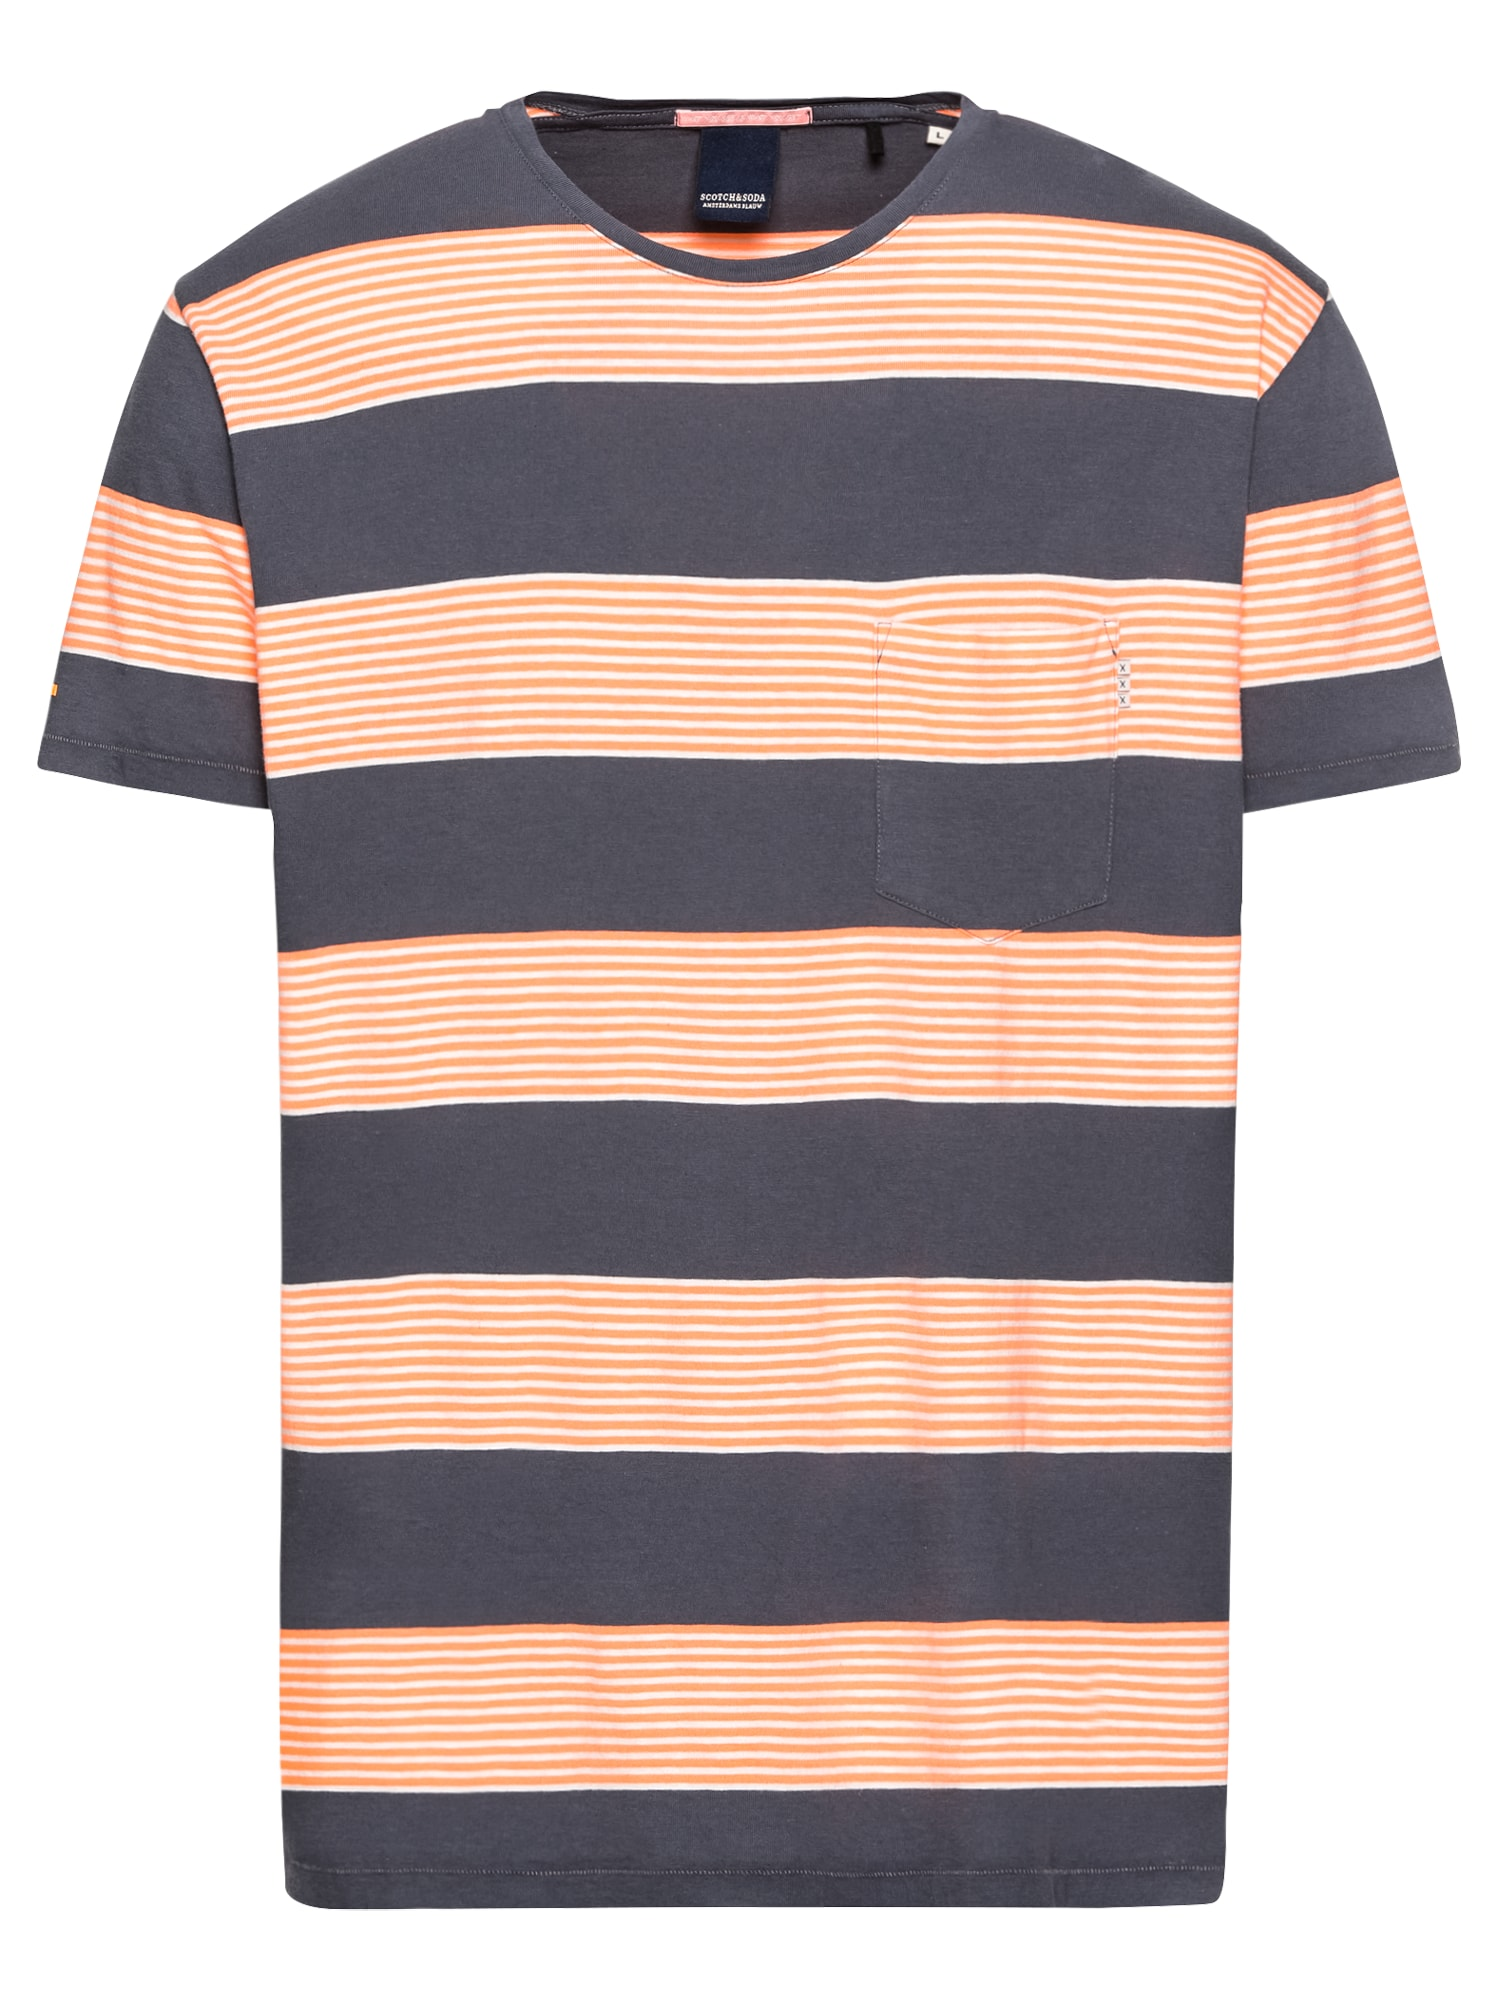 SCOTCH  and  SODA Heren Shirt Ams Blauw 1 pocket regular fit coloured striped tee'